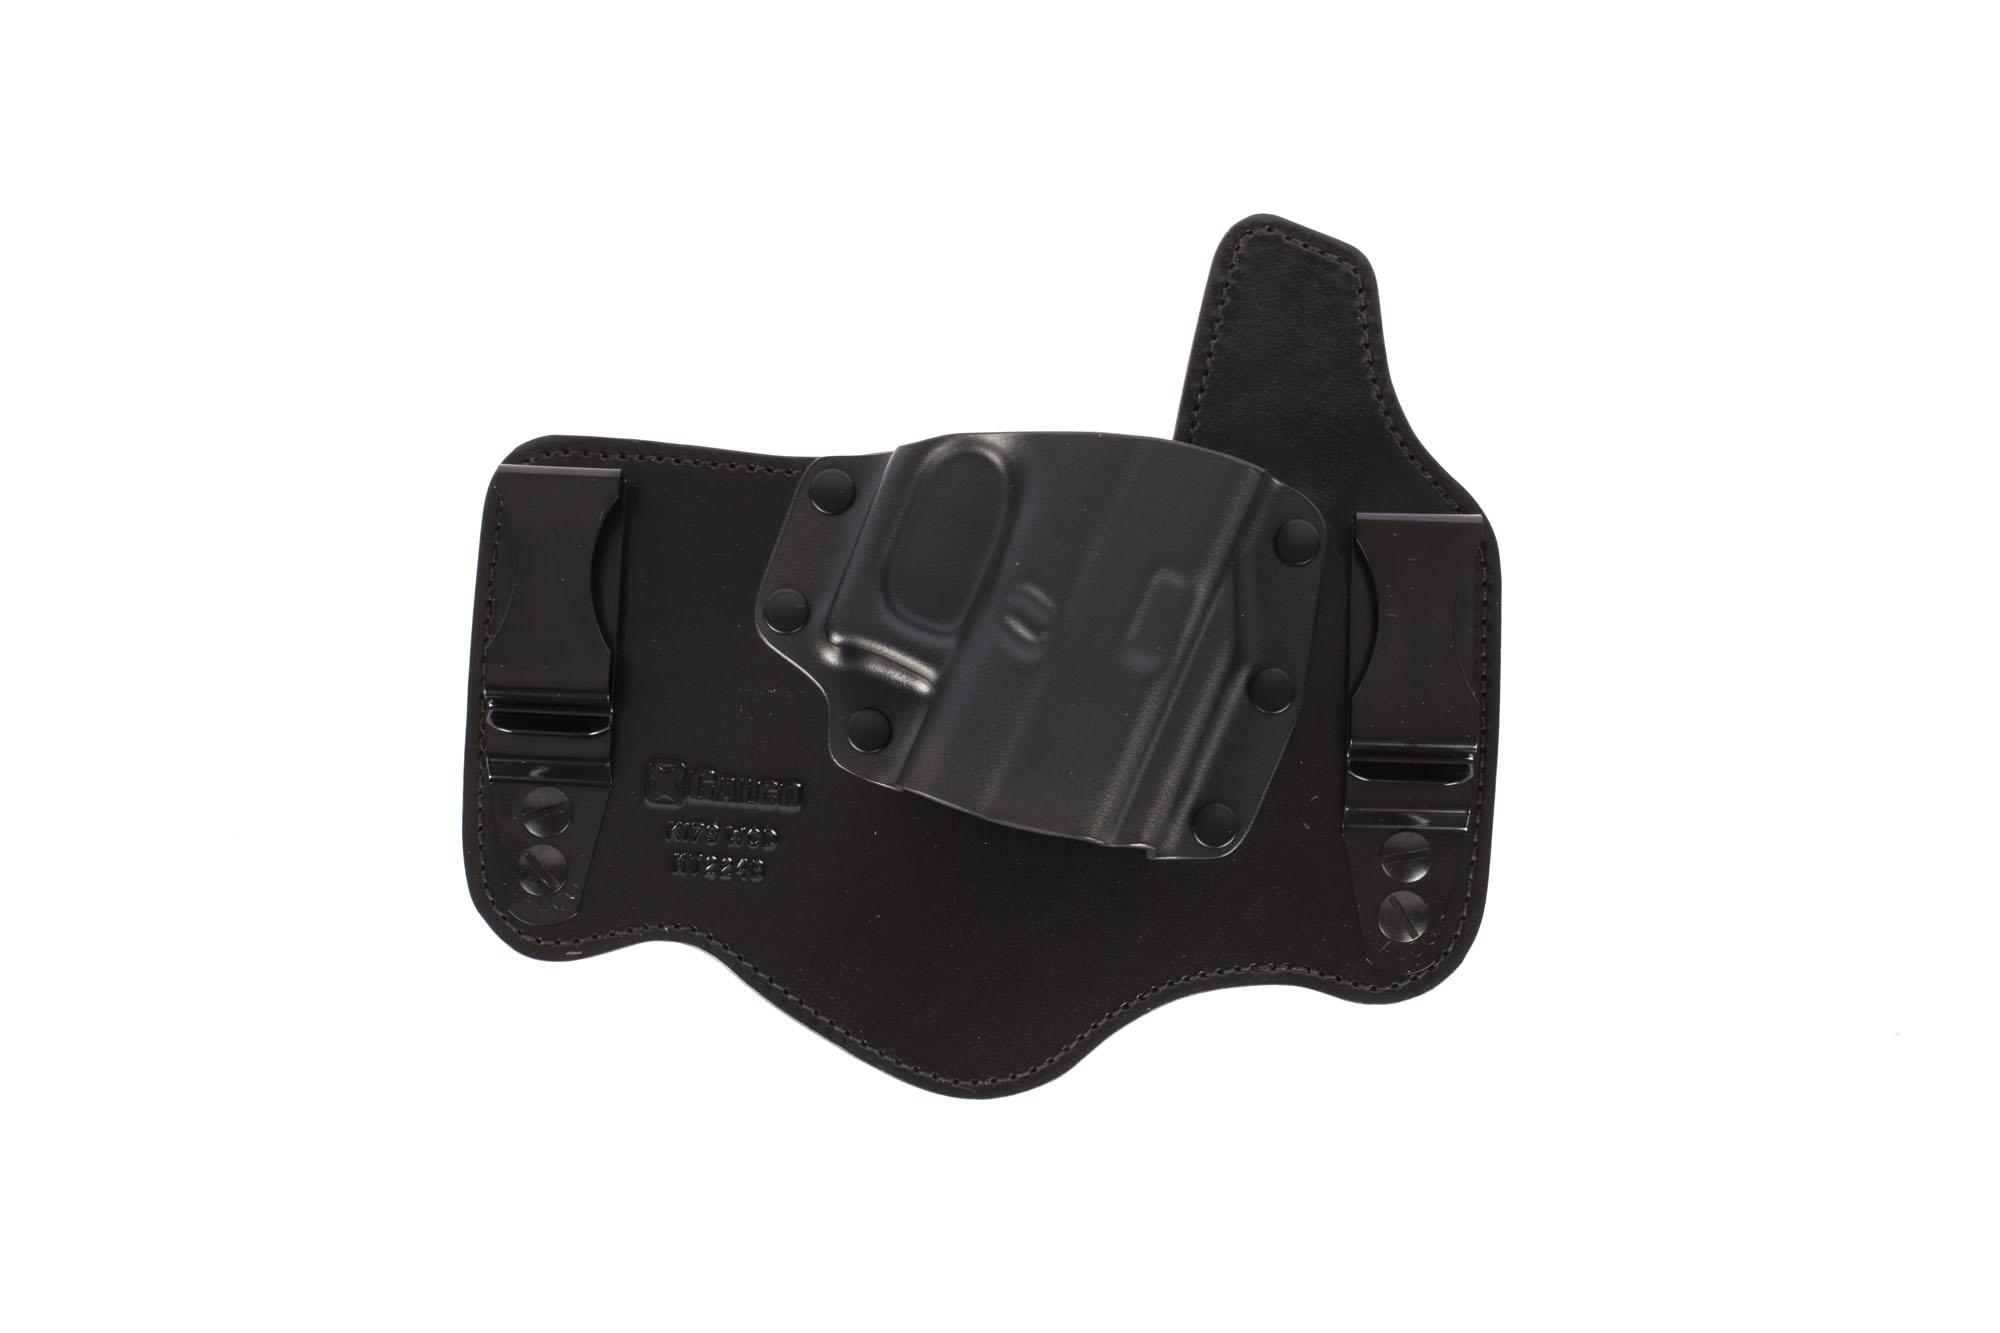 Galco KingTuk Hybrid IWB Holster - GLOCK 17/19/26 - Right Hand - Kydex and  Leather - Black